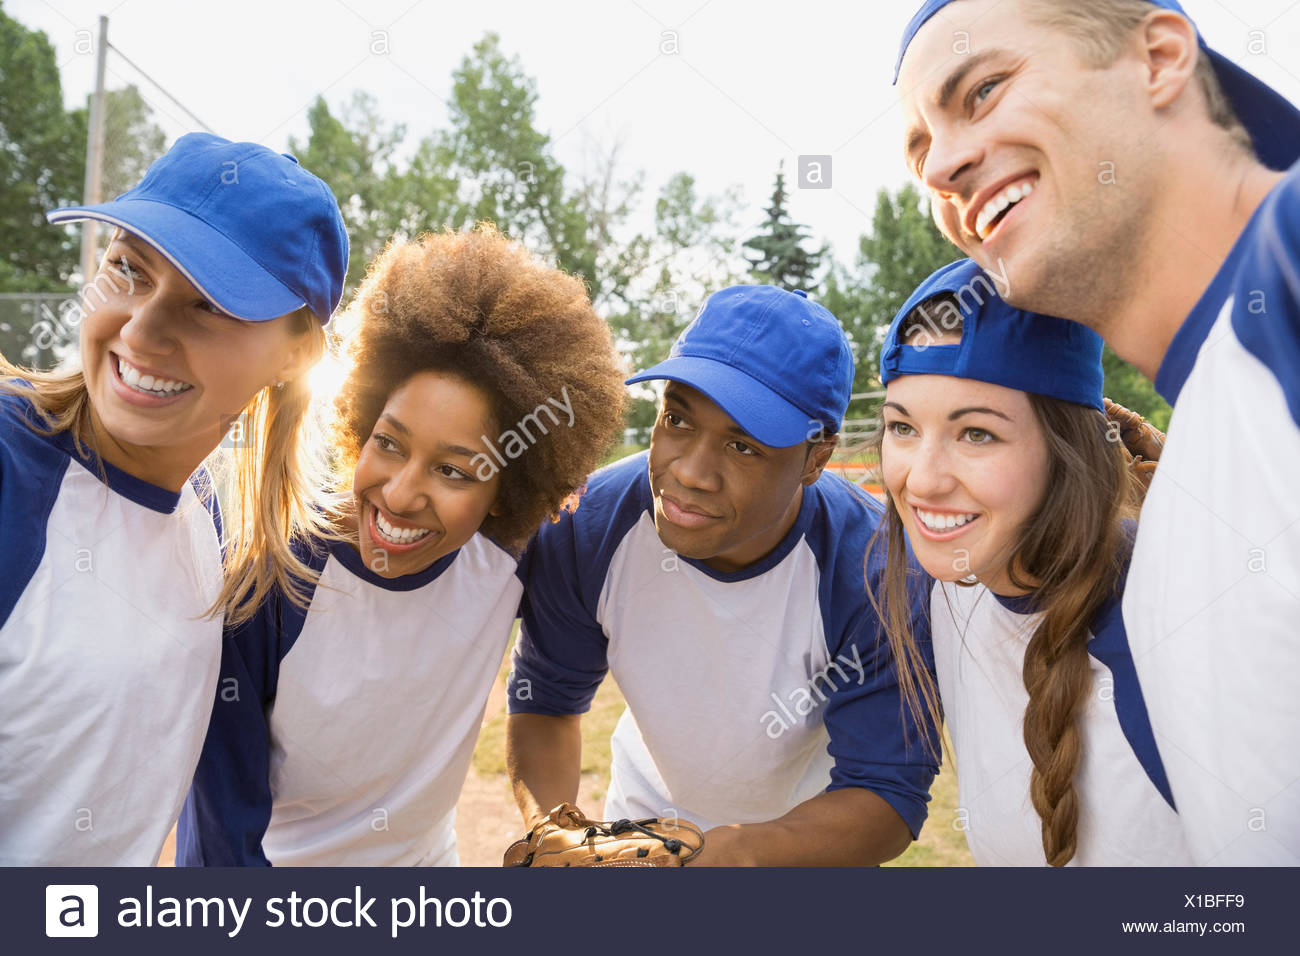 Baseball players talking in huddle on field - Stock Image